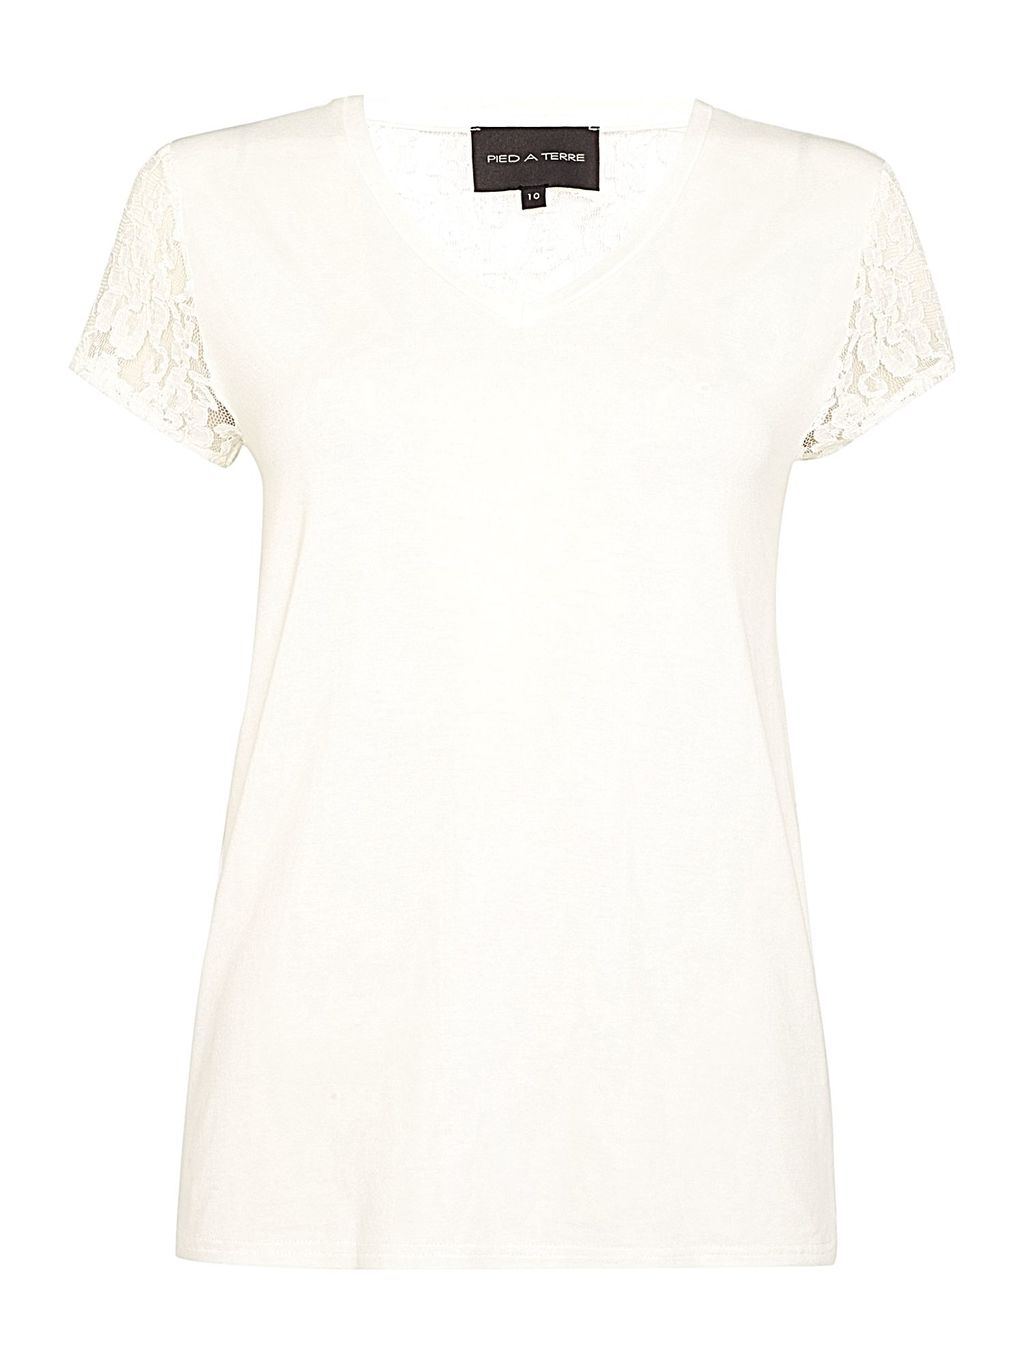 Lace Back Jersey Top, White - neckline: v-neck; sleeve style: capped; style: t-shirt; predominant colour: white; occasions: casual, creative work; length: standard; fibres: viscose/rayon - stretch; fit: body skimming; sleeve length: short sleeve; texture group: jersey - clingy; pattern type: fabric; pattern size: light/subtle; pattern: patterned/print; embellishment: lace; shoulder detail: sheer at shoulder; season: s/s 2016; wardrobe: highlight